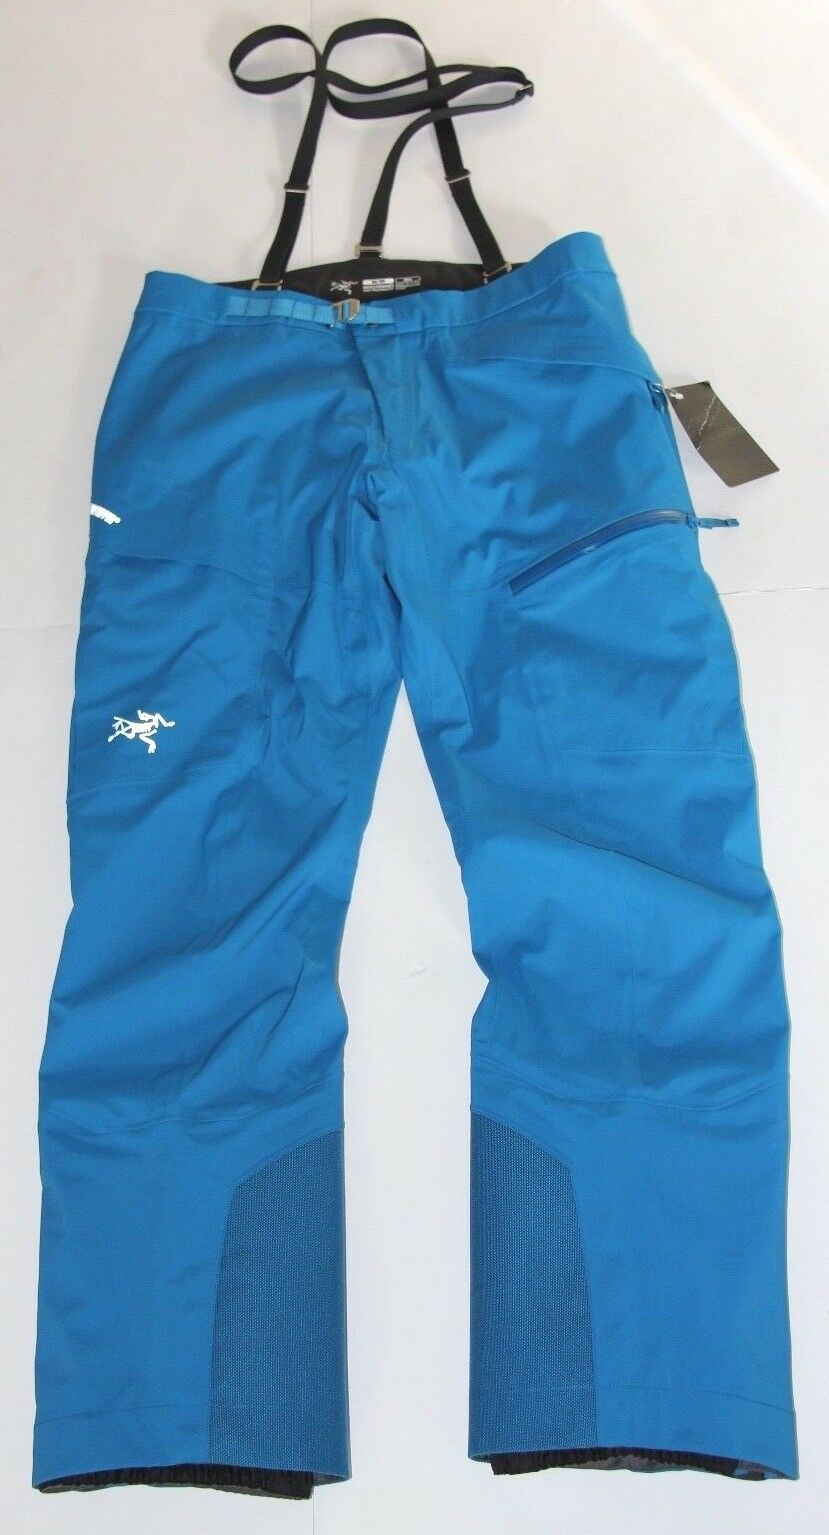 Arc'teryx Procline AR Pants Men's Softshell - Size Medium  - Macaw bluee - NEW  lowest prices